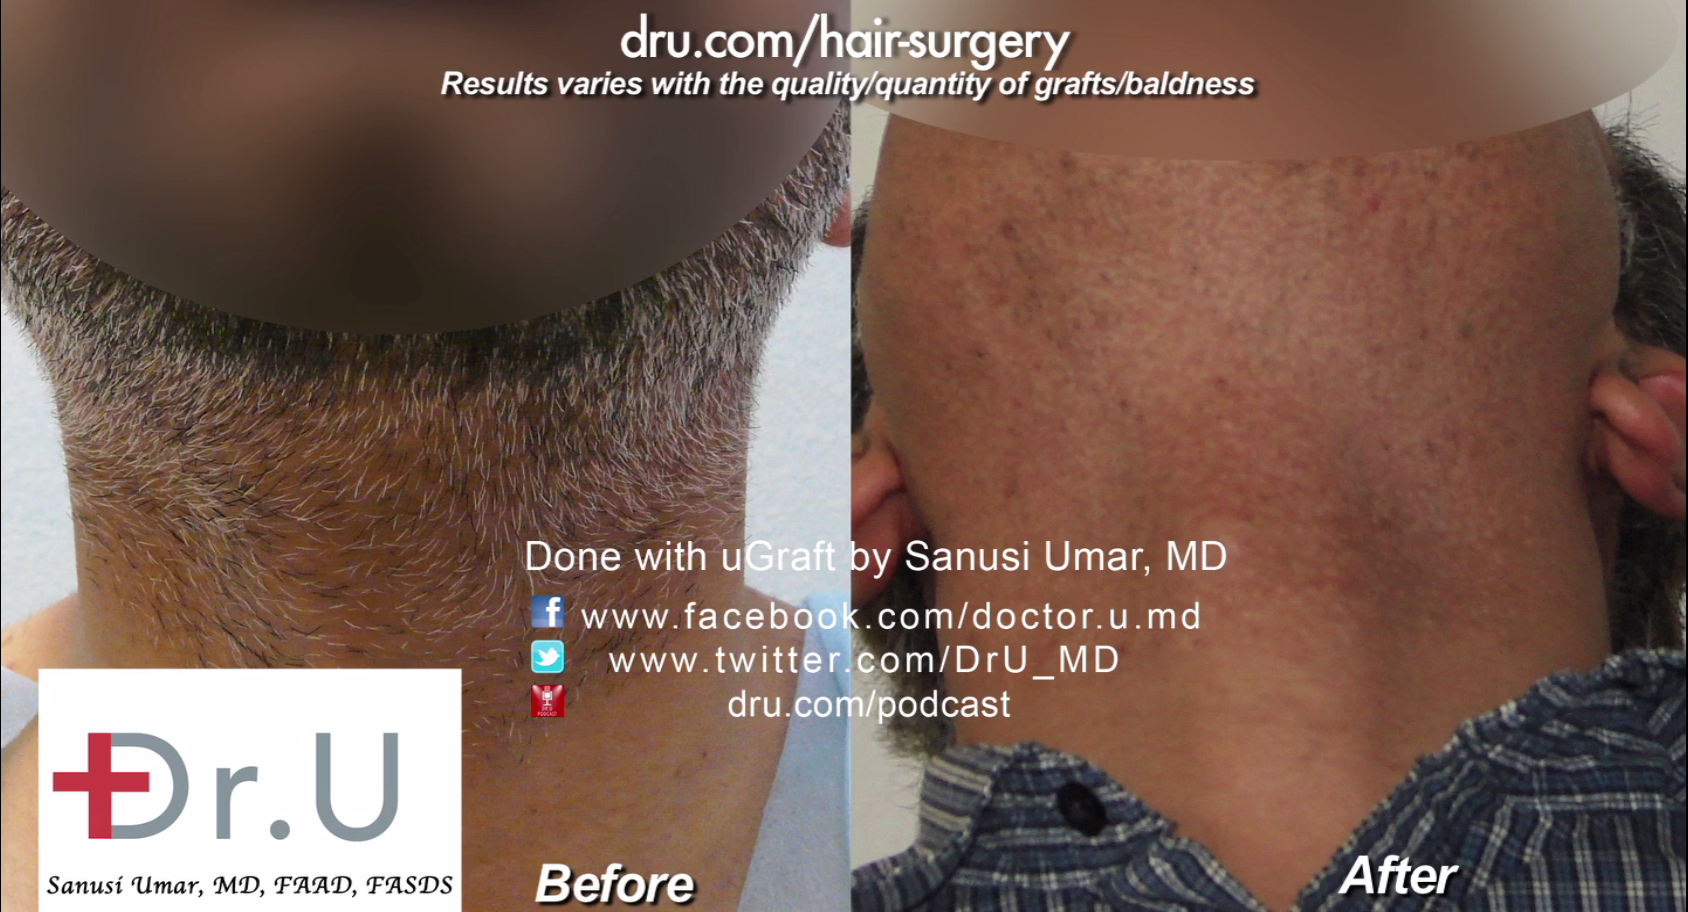 Over 4,000 grafts pulled from beard by Dr.UGraft.